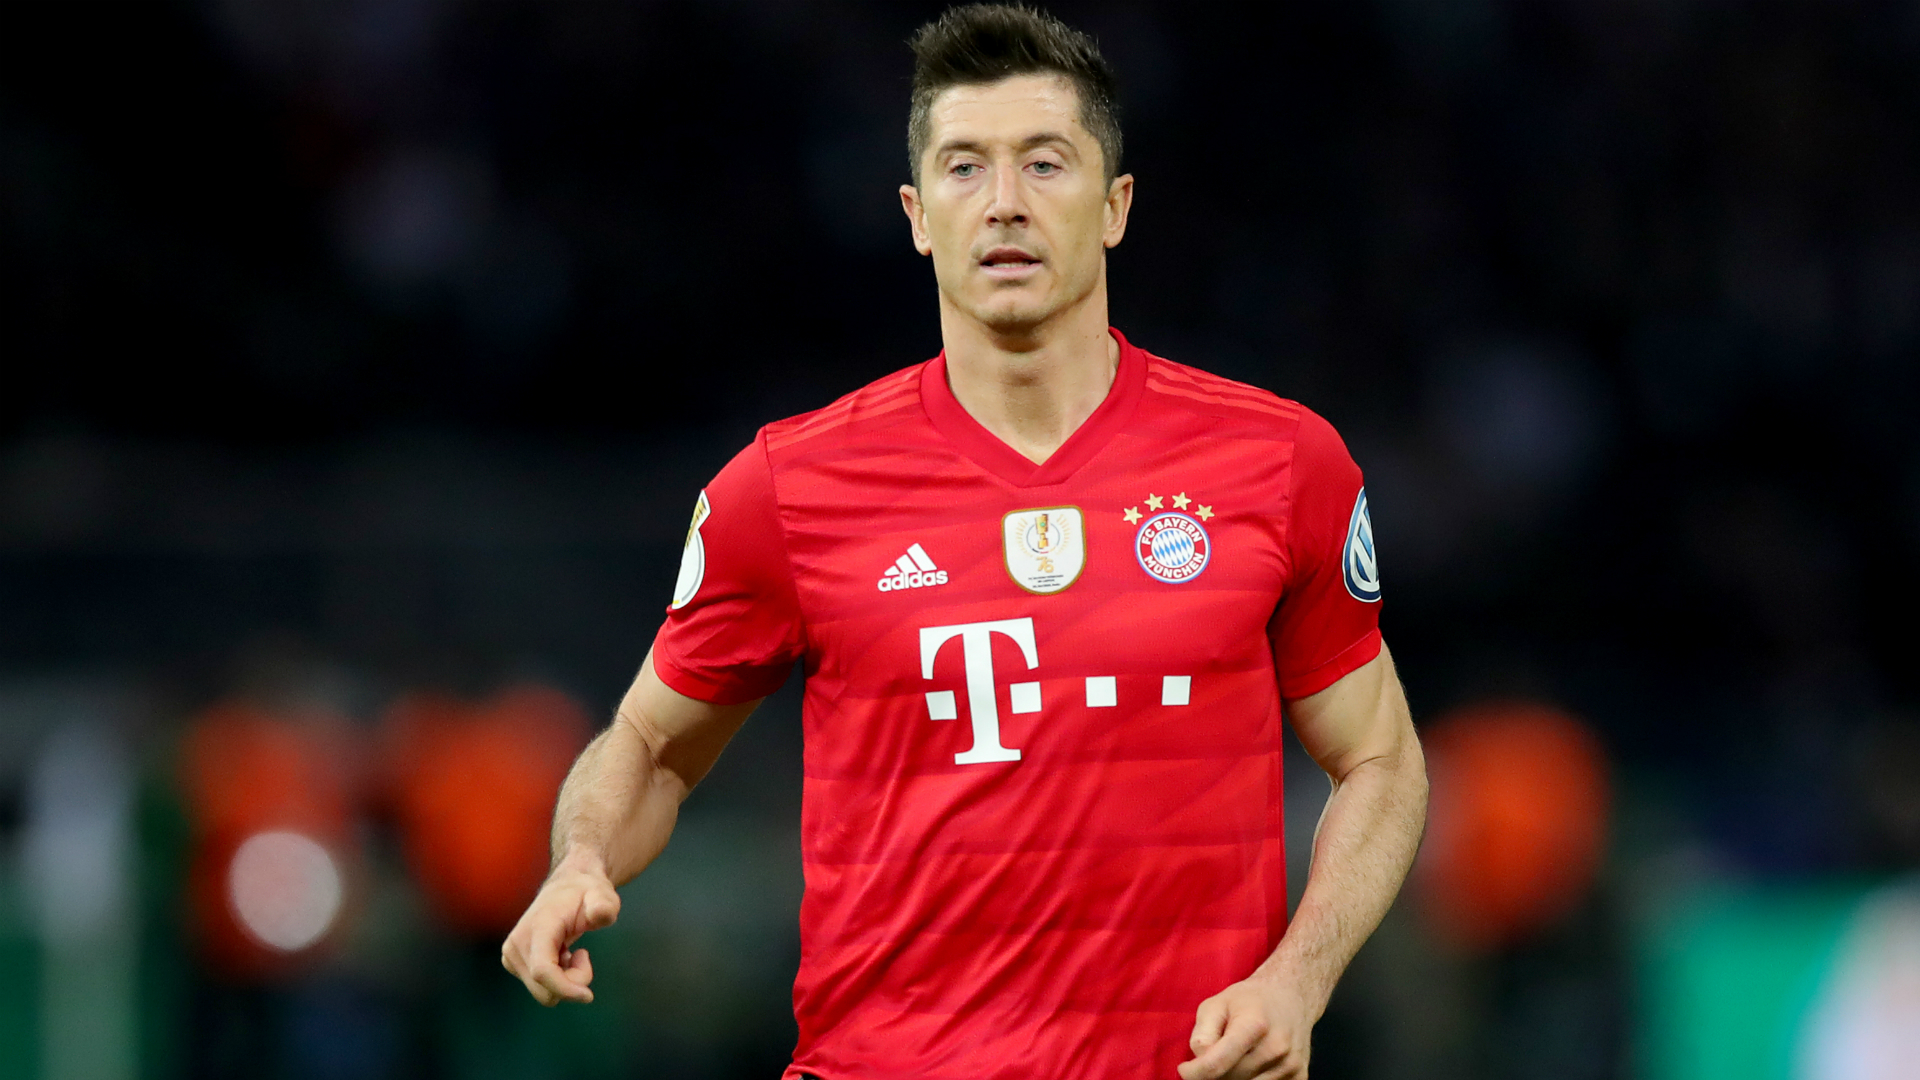 Lewandowski is one of Bayern's leaders - Kovac